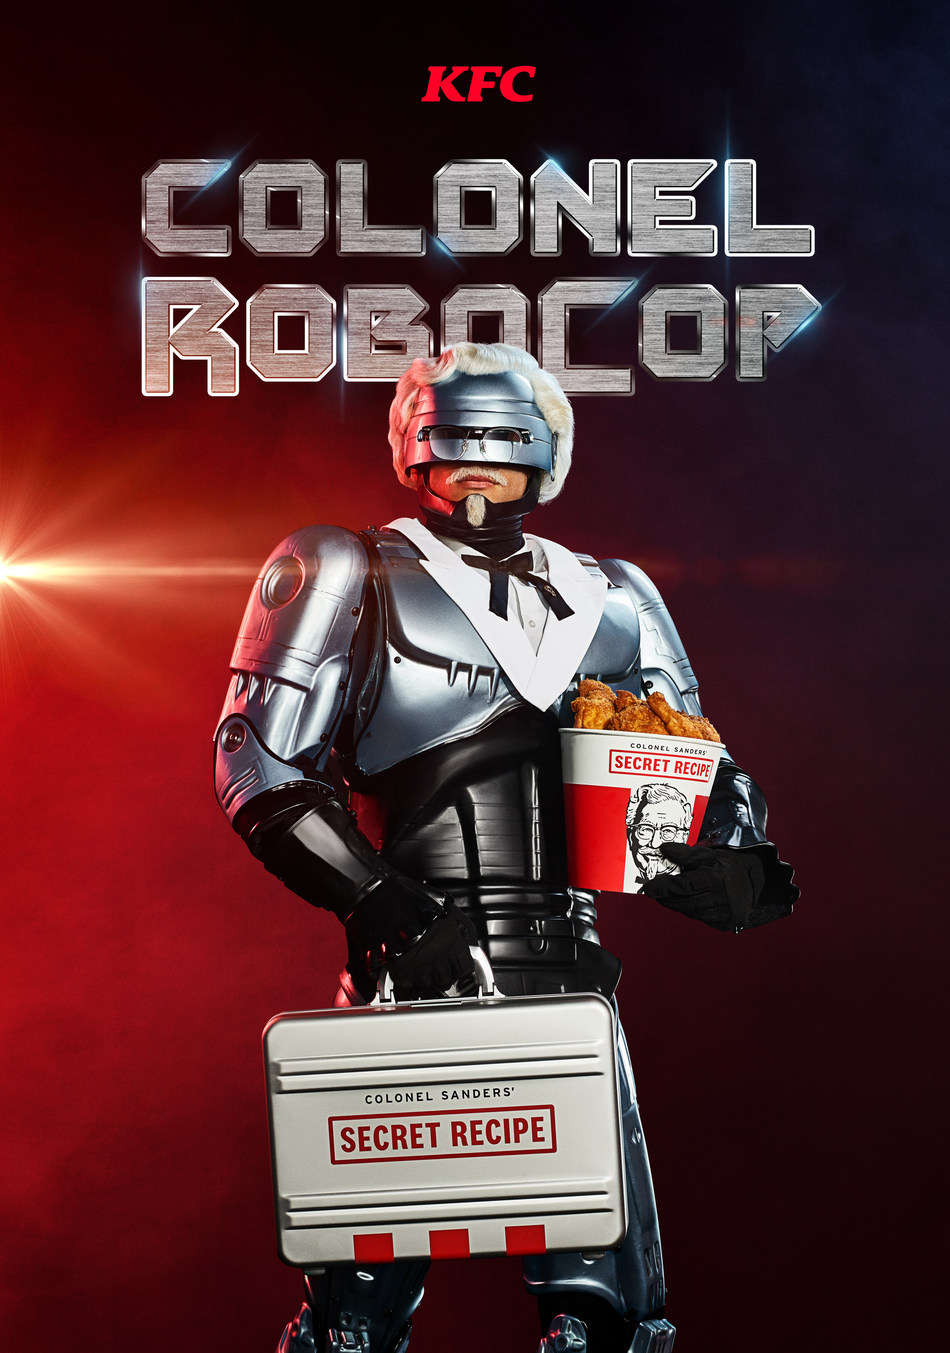 KFC U.S. COMMISSIONS  ROBOCOP AS ITS NEWEST COLONEL-AND GUARDIAN OF ITS COVETED SECRET RECIPE OF 11 HERBS & SPICES